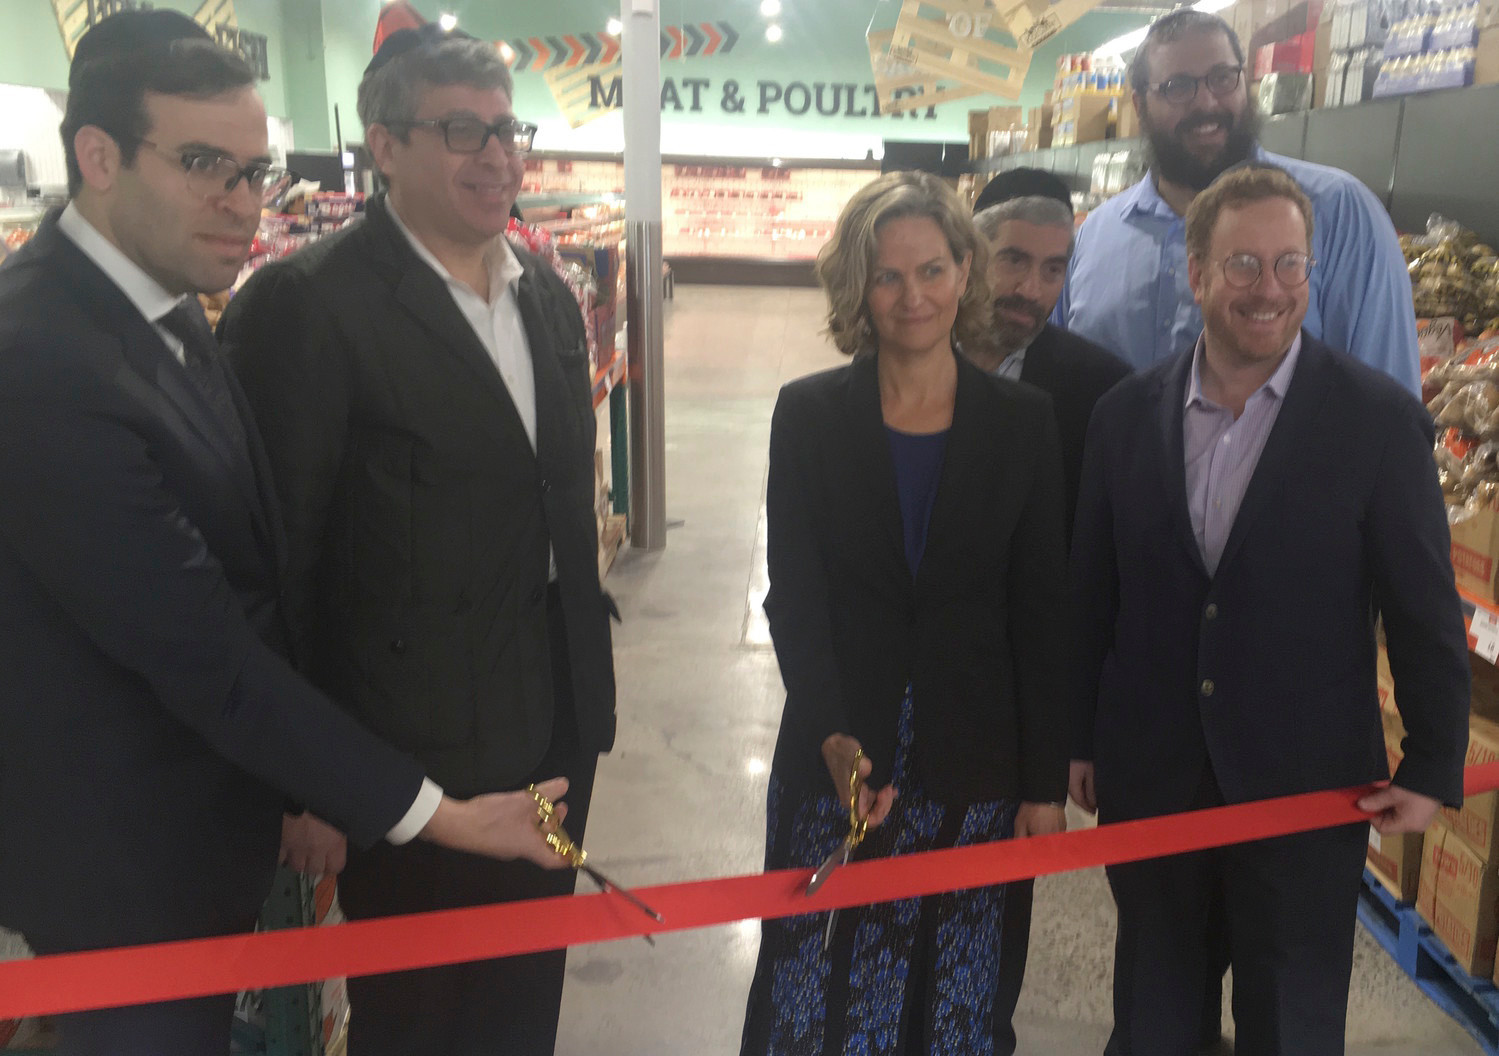 KolSave Market in Lawrence opened on Jan. 8. From left were Rabbi Boruch Bender, Yoeli Steinberg, Nassau County Executive Laura Curran, Howie Klagsburn, KolSave store manager Mendy Herz and Moshe Ratner.